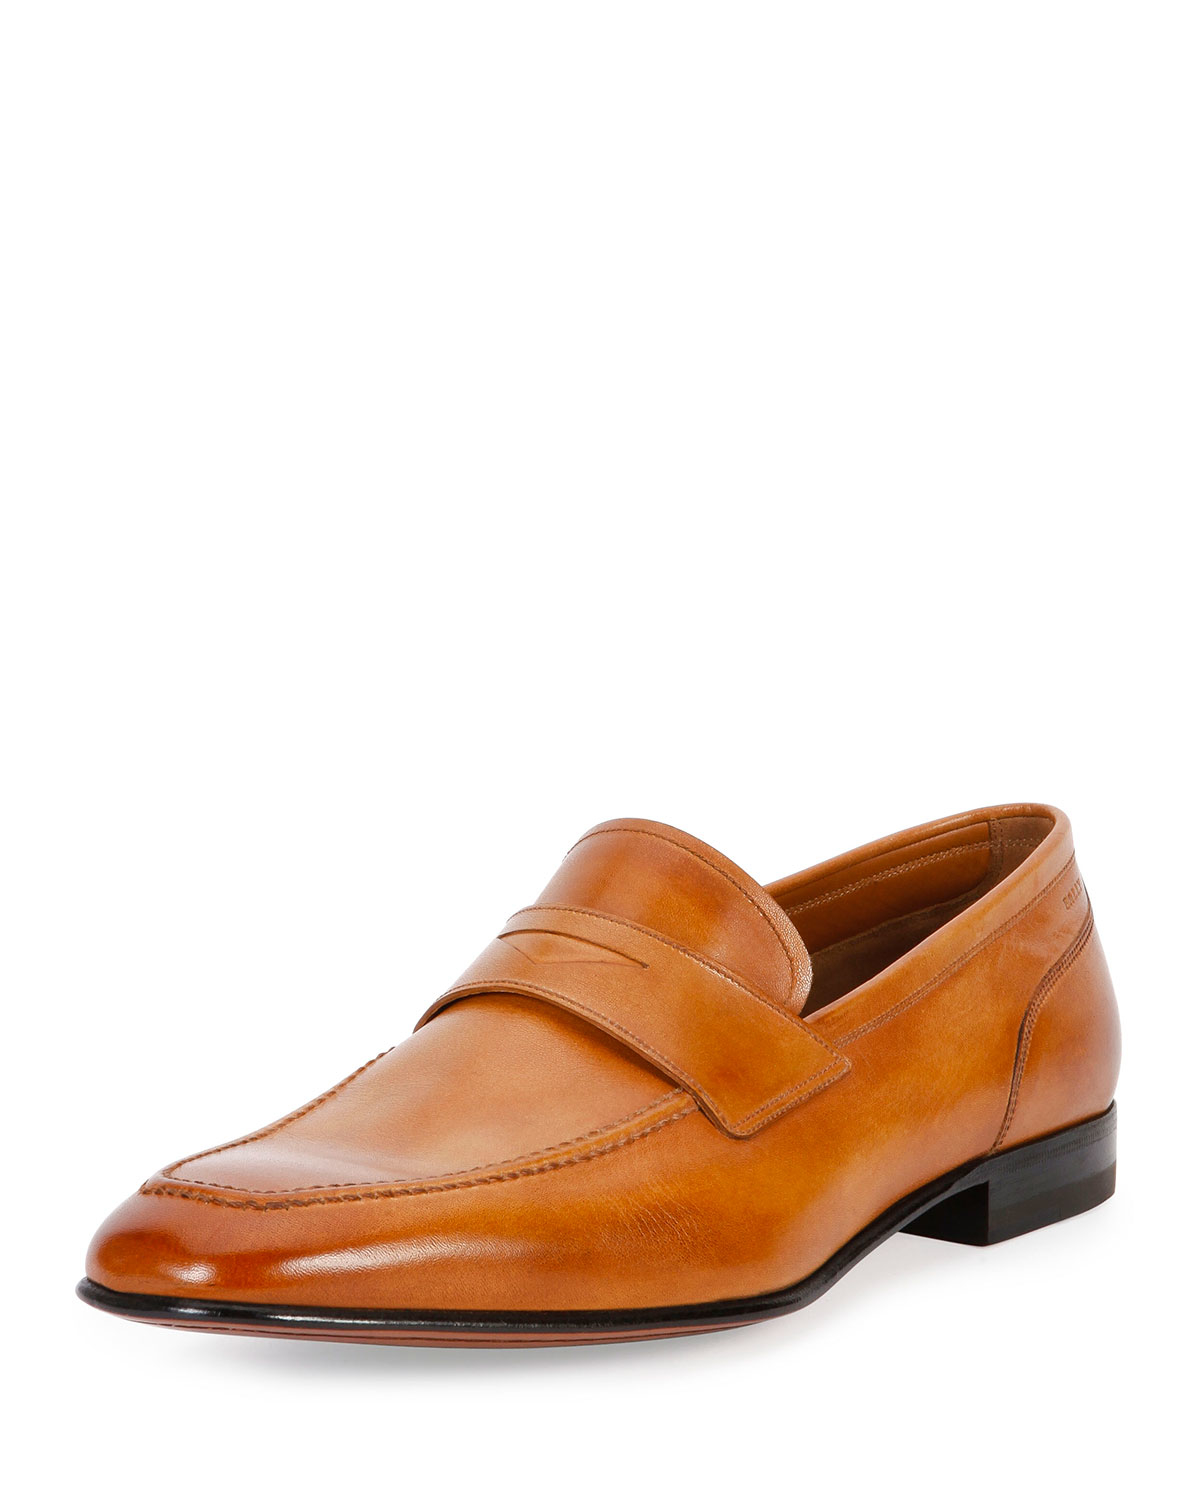 Bally Brent Leather Penny Loafer in Brown for Men   Lyst